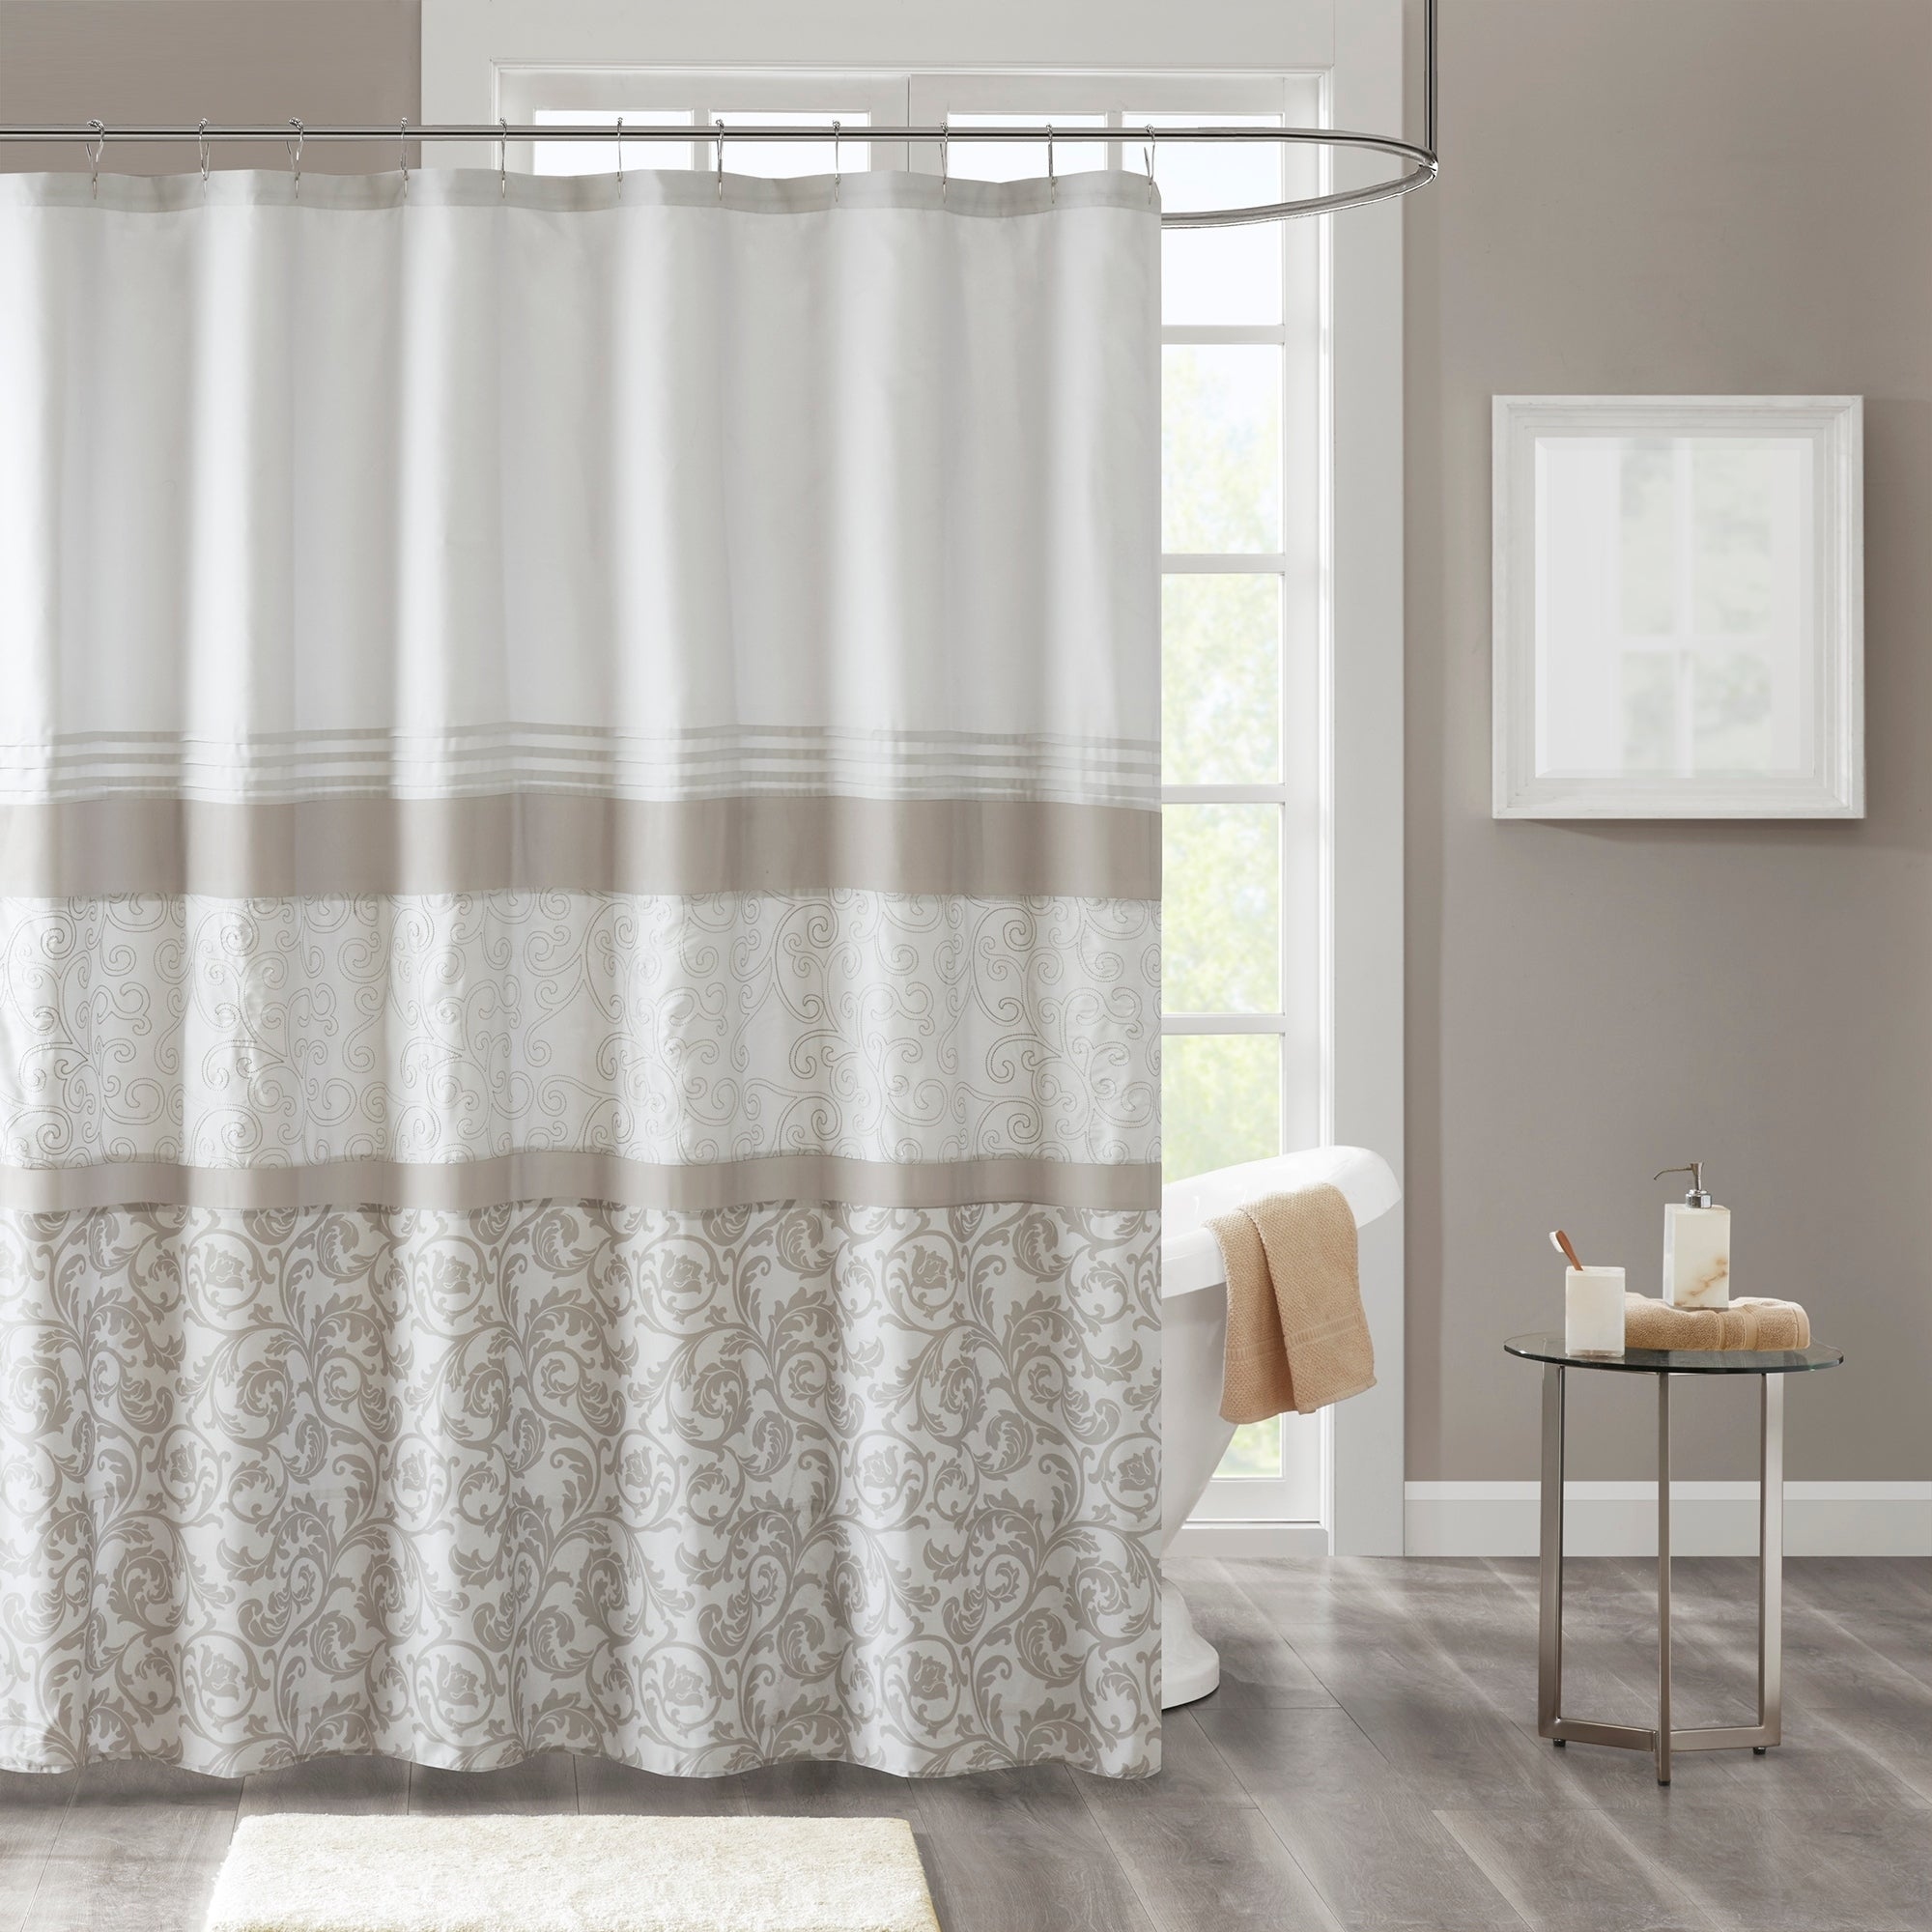 Shop 510 Design Lynda Neutral Printed And Embroidered Shower Curtain